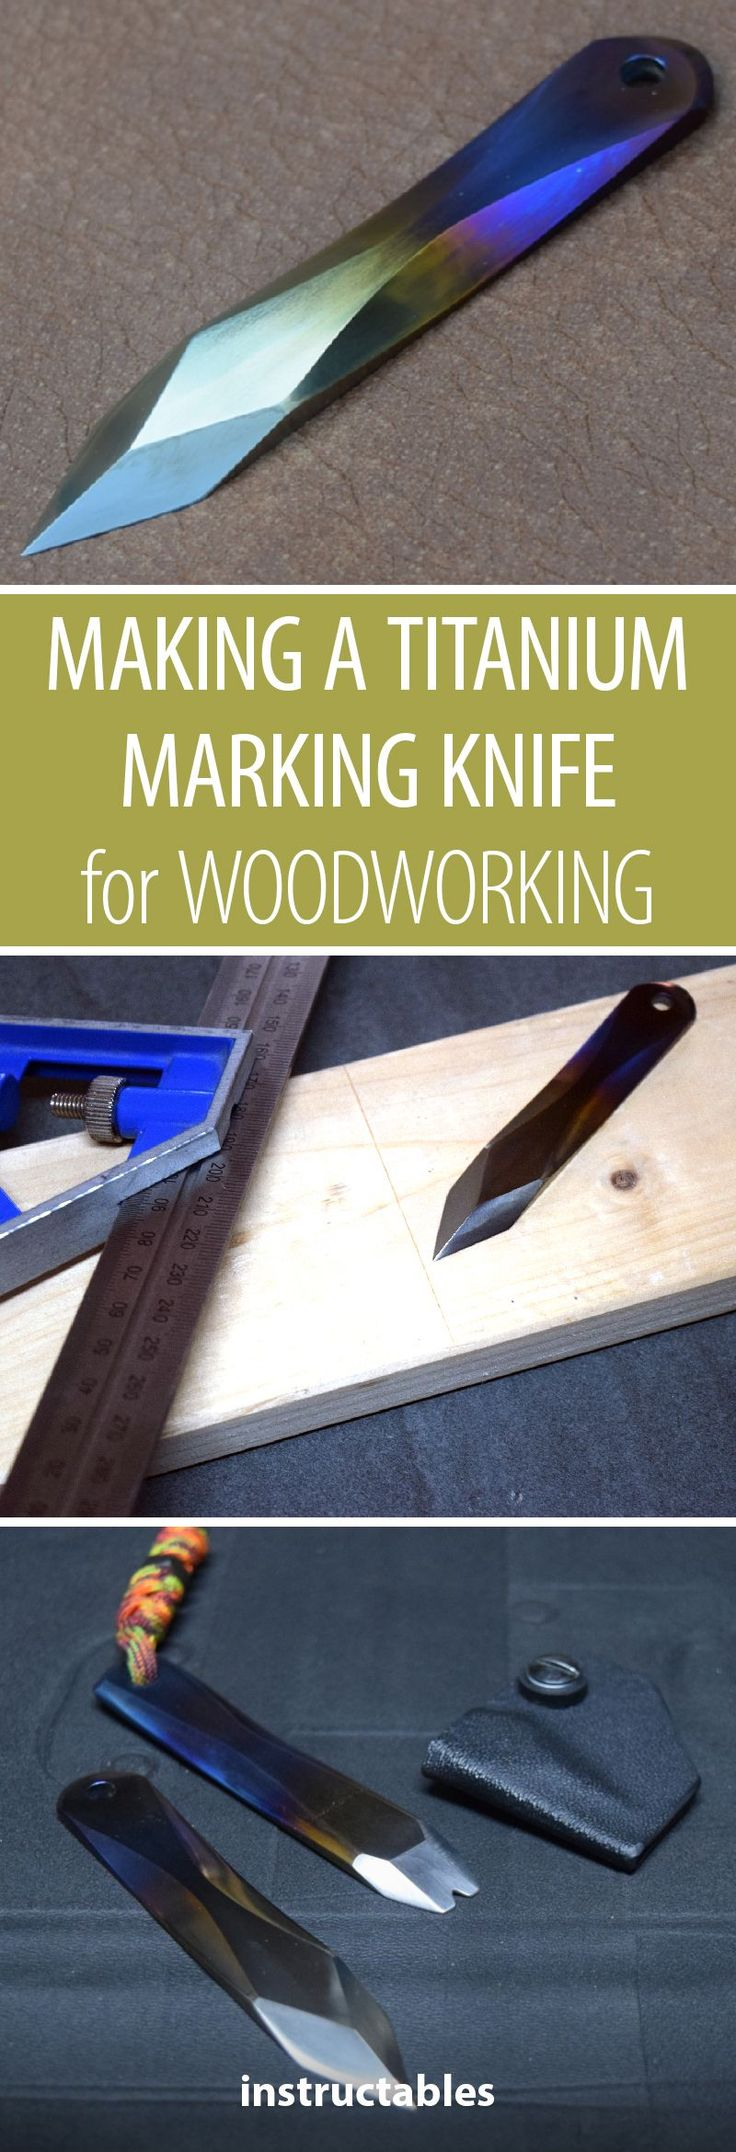 DIY Woodworking Ideas Make a marking knife from titanium for woodworking. #metalworking #workshop #woo...